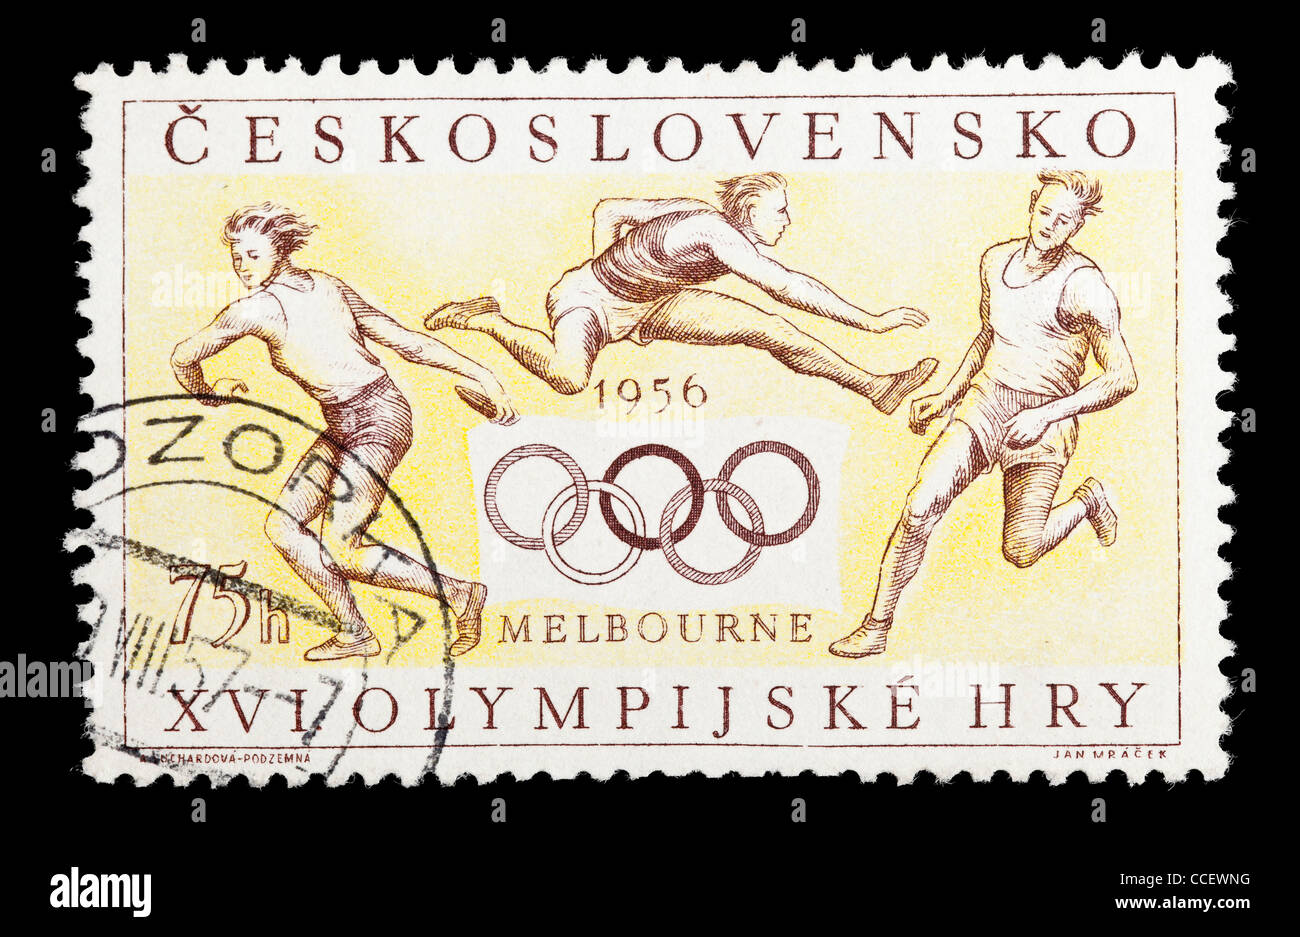 Postage stamp: XVI. Olympic Games 1956, Czechoslovakia, stamped - Stock Image